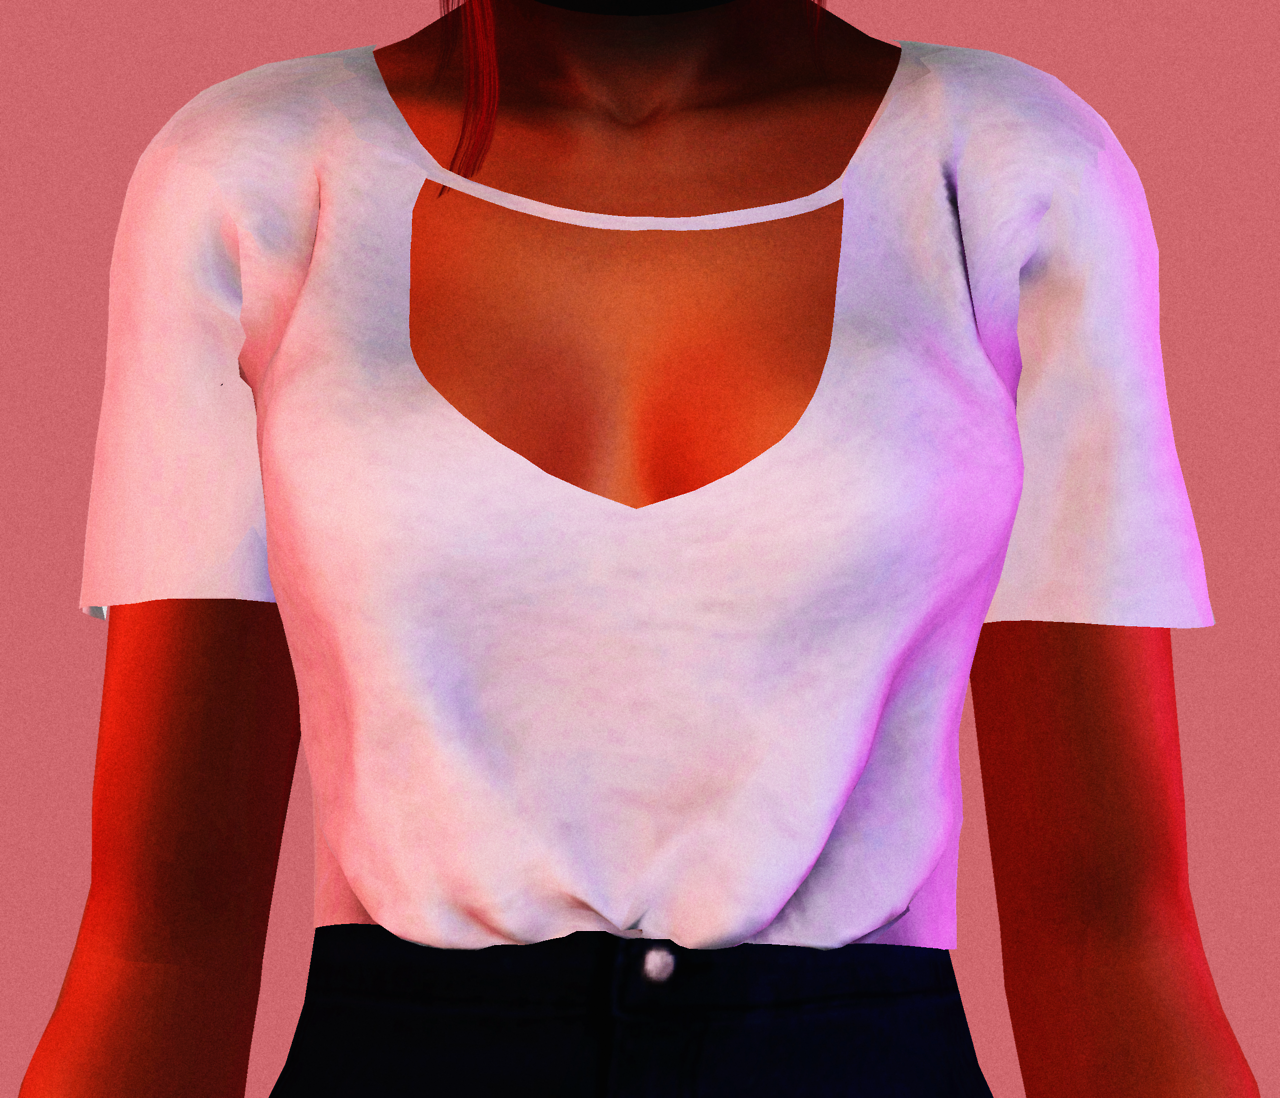 Lumy-sims Sybel Tucked in T-shirt Converted To Sims 3 • All credit goes to @lumysims • Recolorable • There are bones assignment problems under the arms, sorry • 1024x1024 Texture • Original Sims 4 Post [X] Package / Mirror Sims3Pack / Mirror